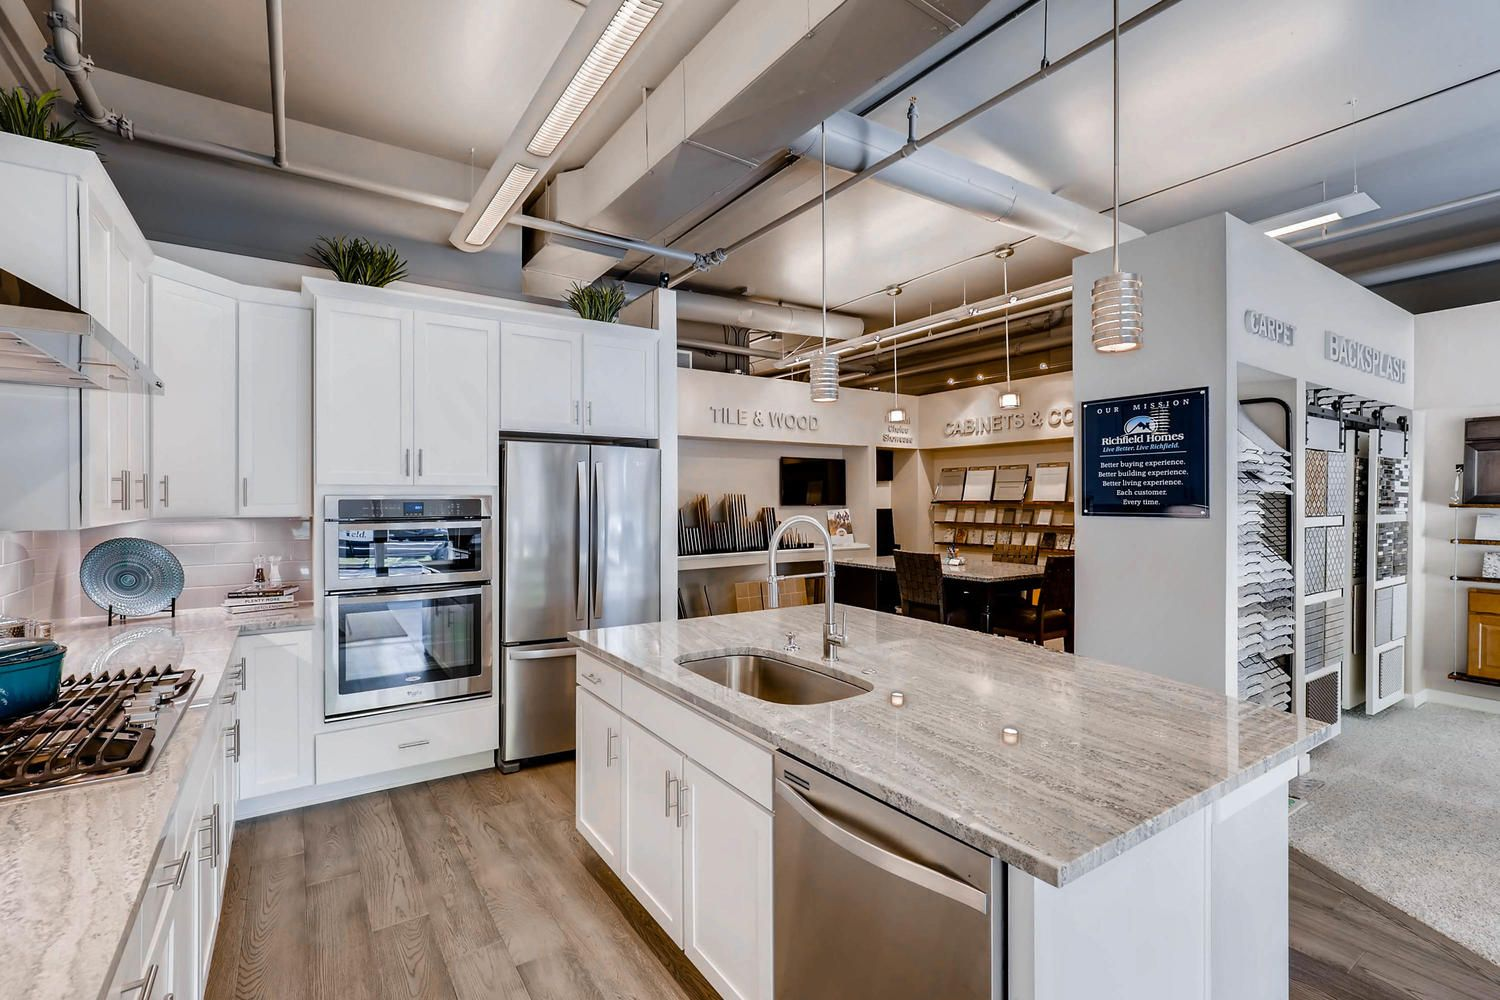 Richfield Homes Recently Opened Their New Design Studio Located In Longmont Co The Design Studio Allows Homebuyers To Personalize Th Home Design Rich Living